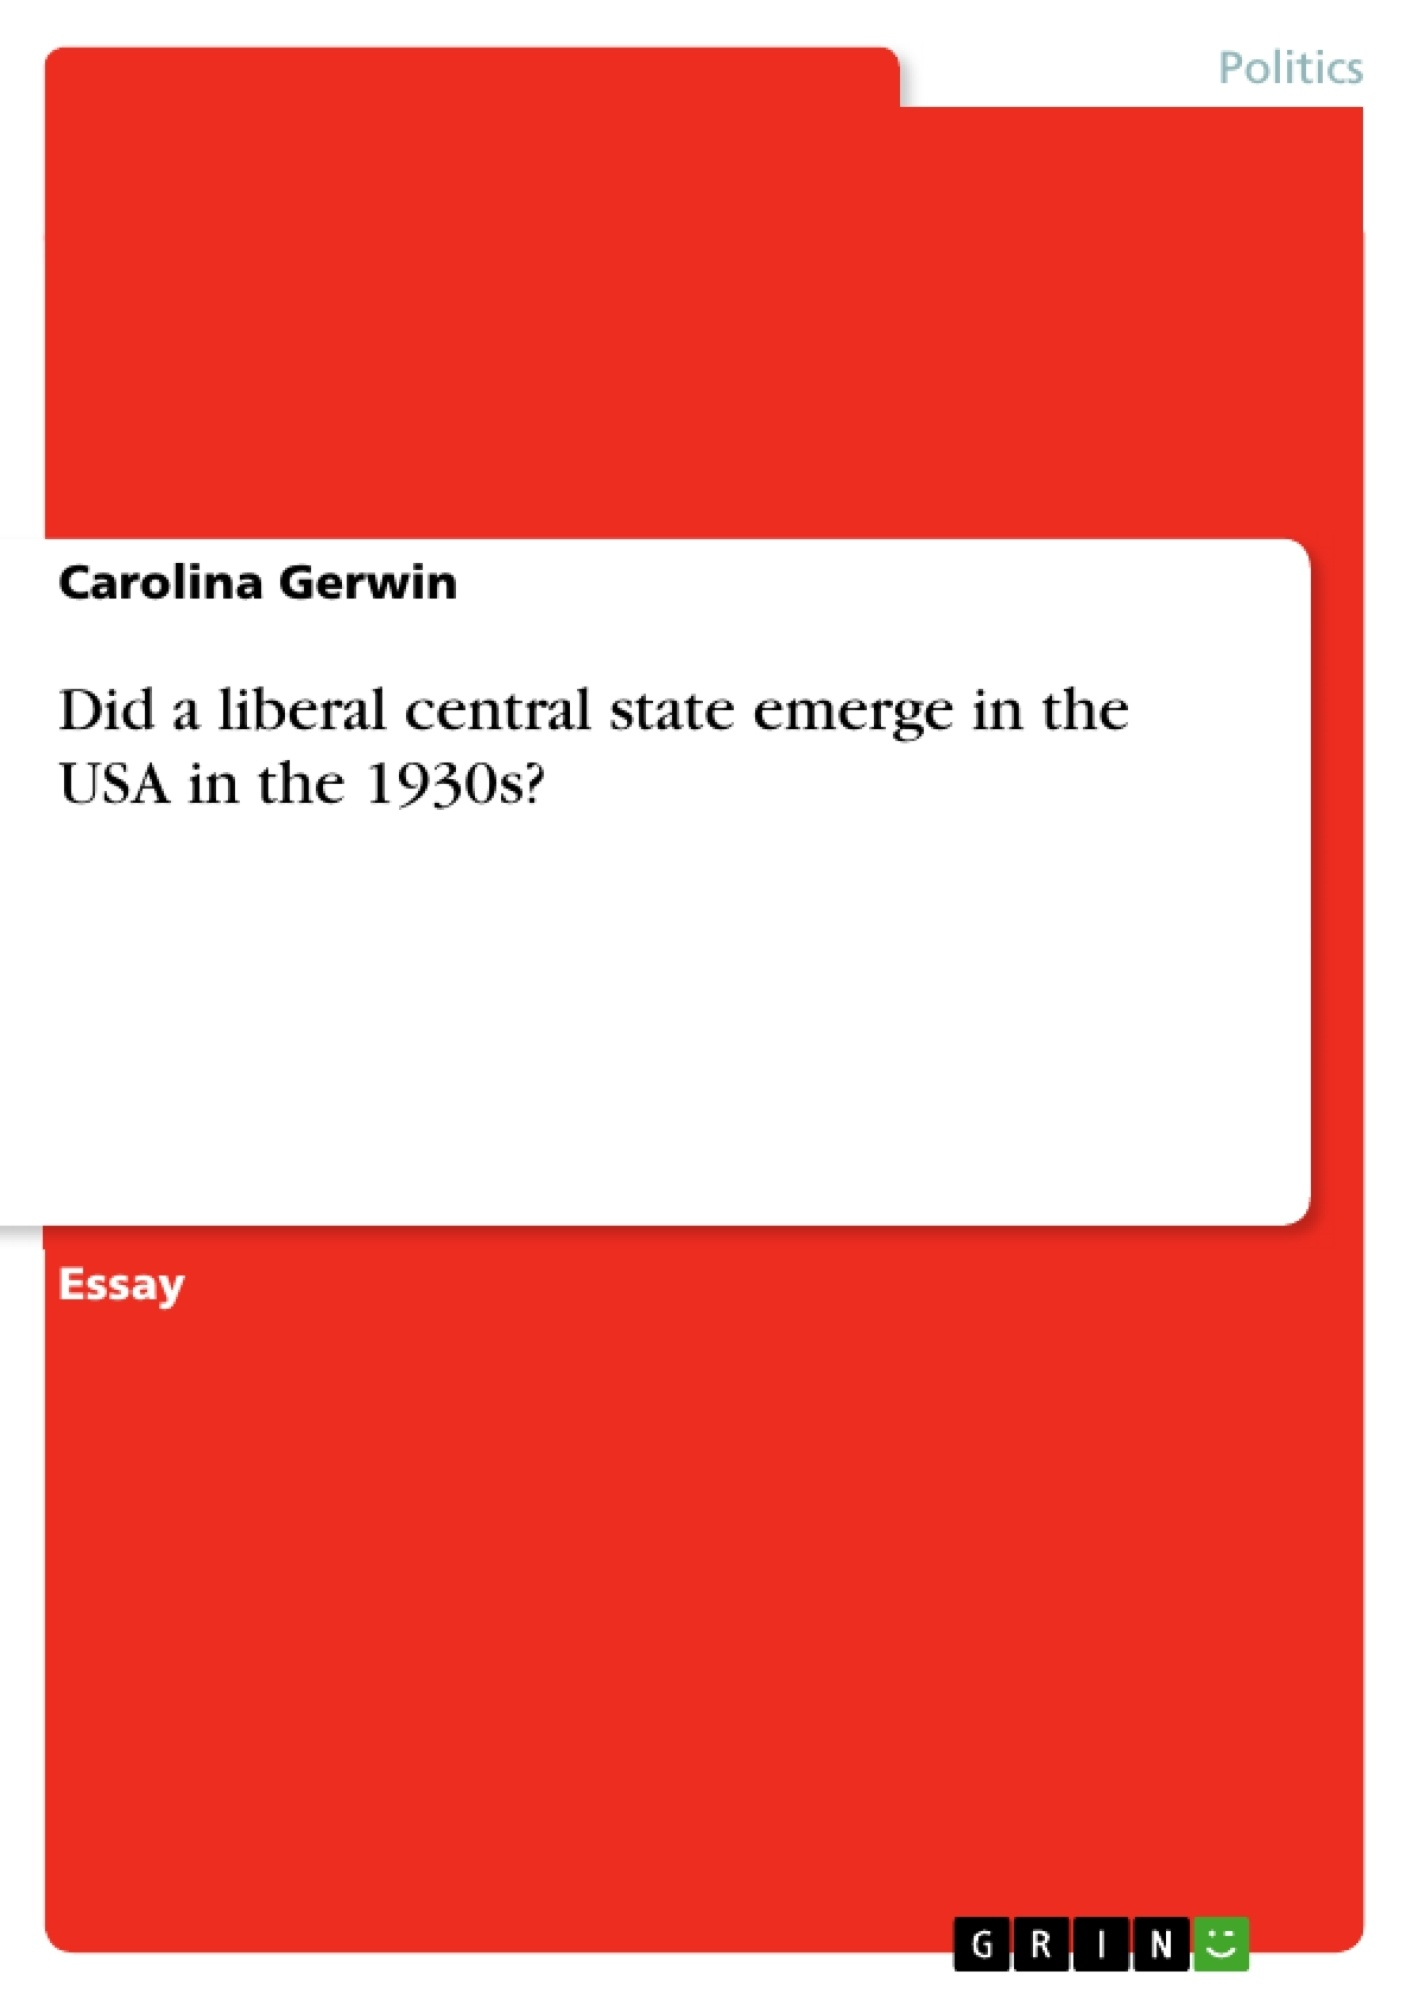 Title: Did a liberal central state emerge in the USA in the 1930s?